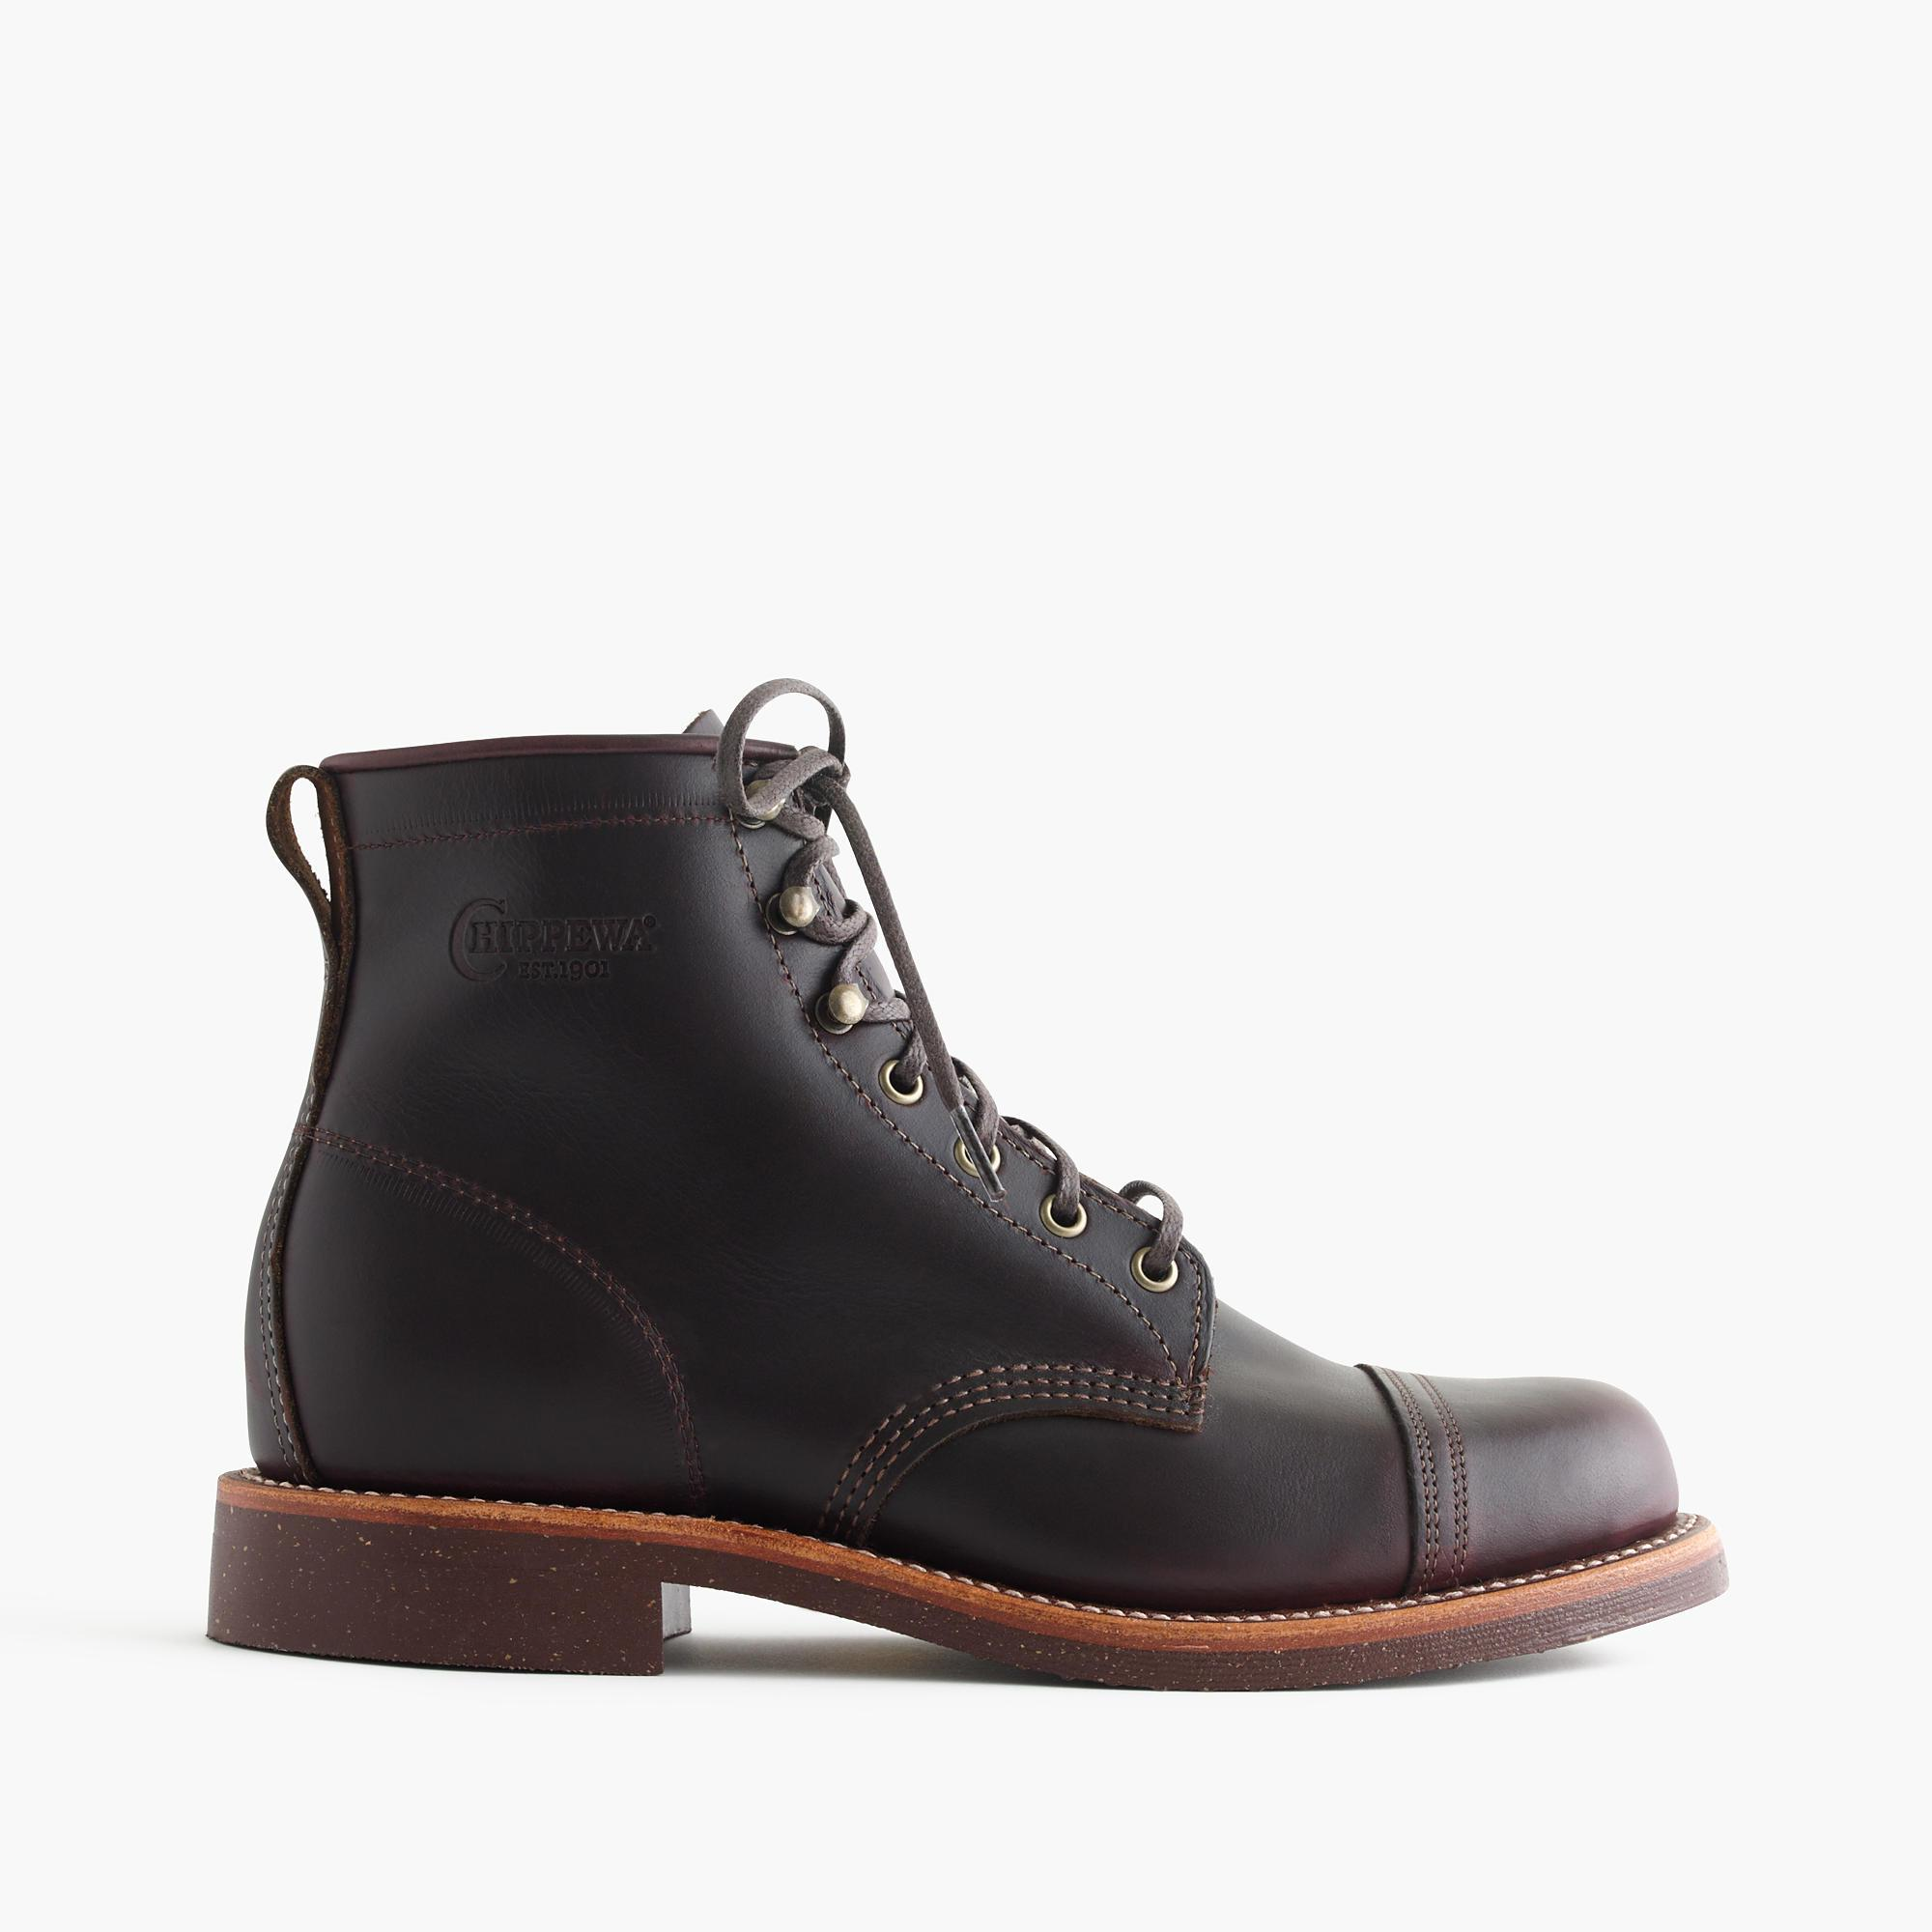 lyst j crew original chippewa cap toe boots in brown for men. Black Bedroom Furniture Sets. Home Design Ideas